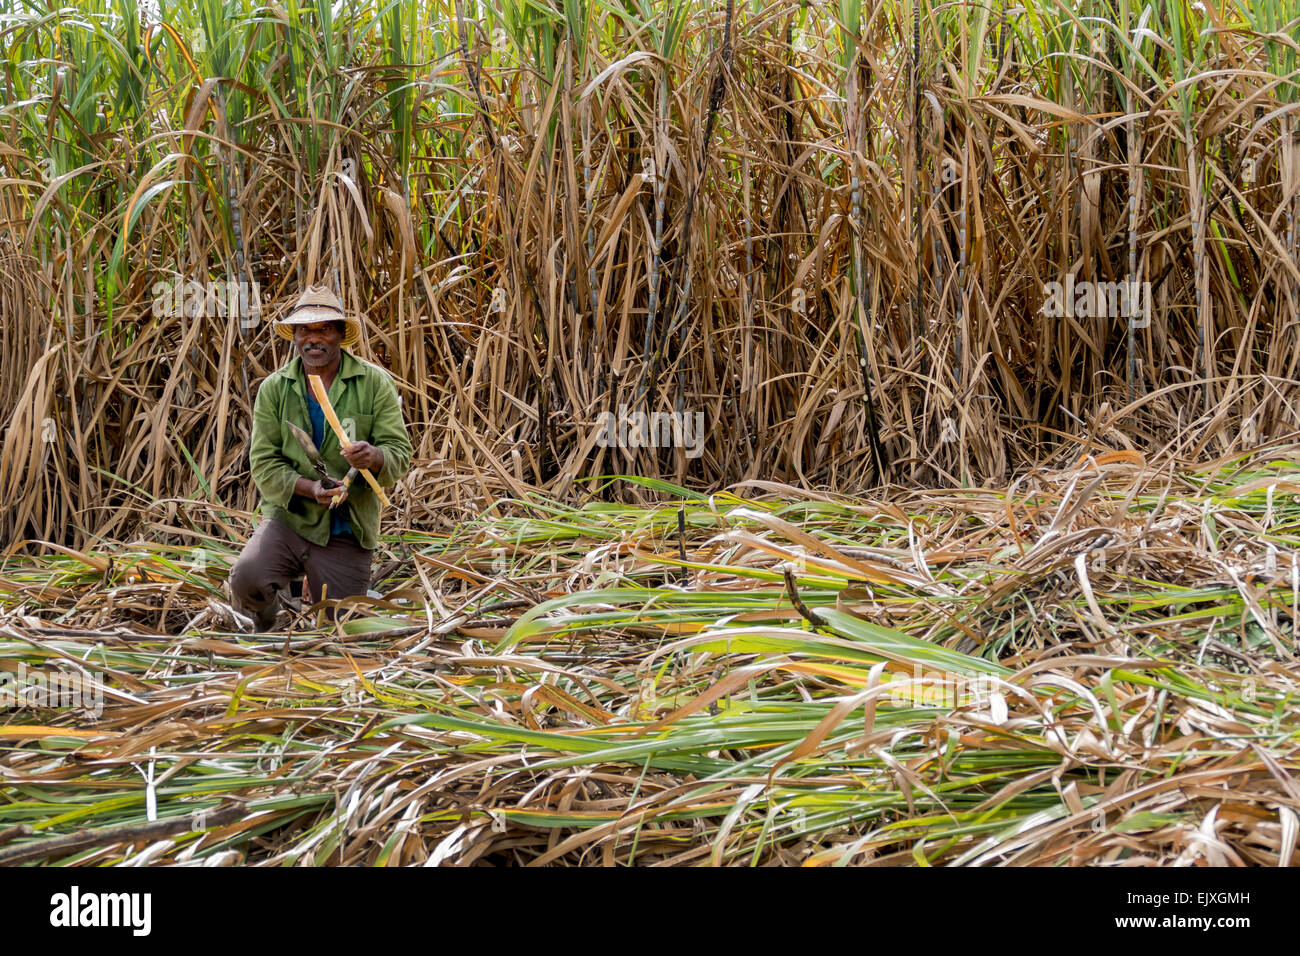 Cuba Farmer Cutting Sugar Cane